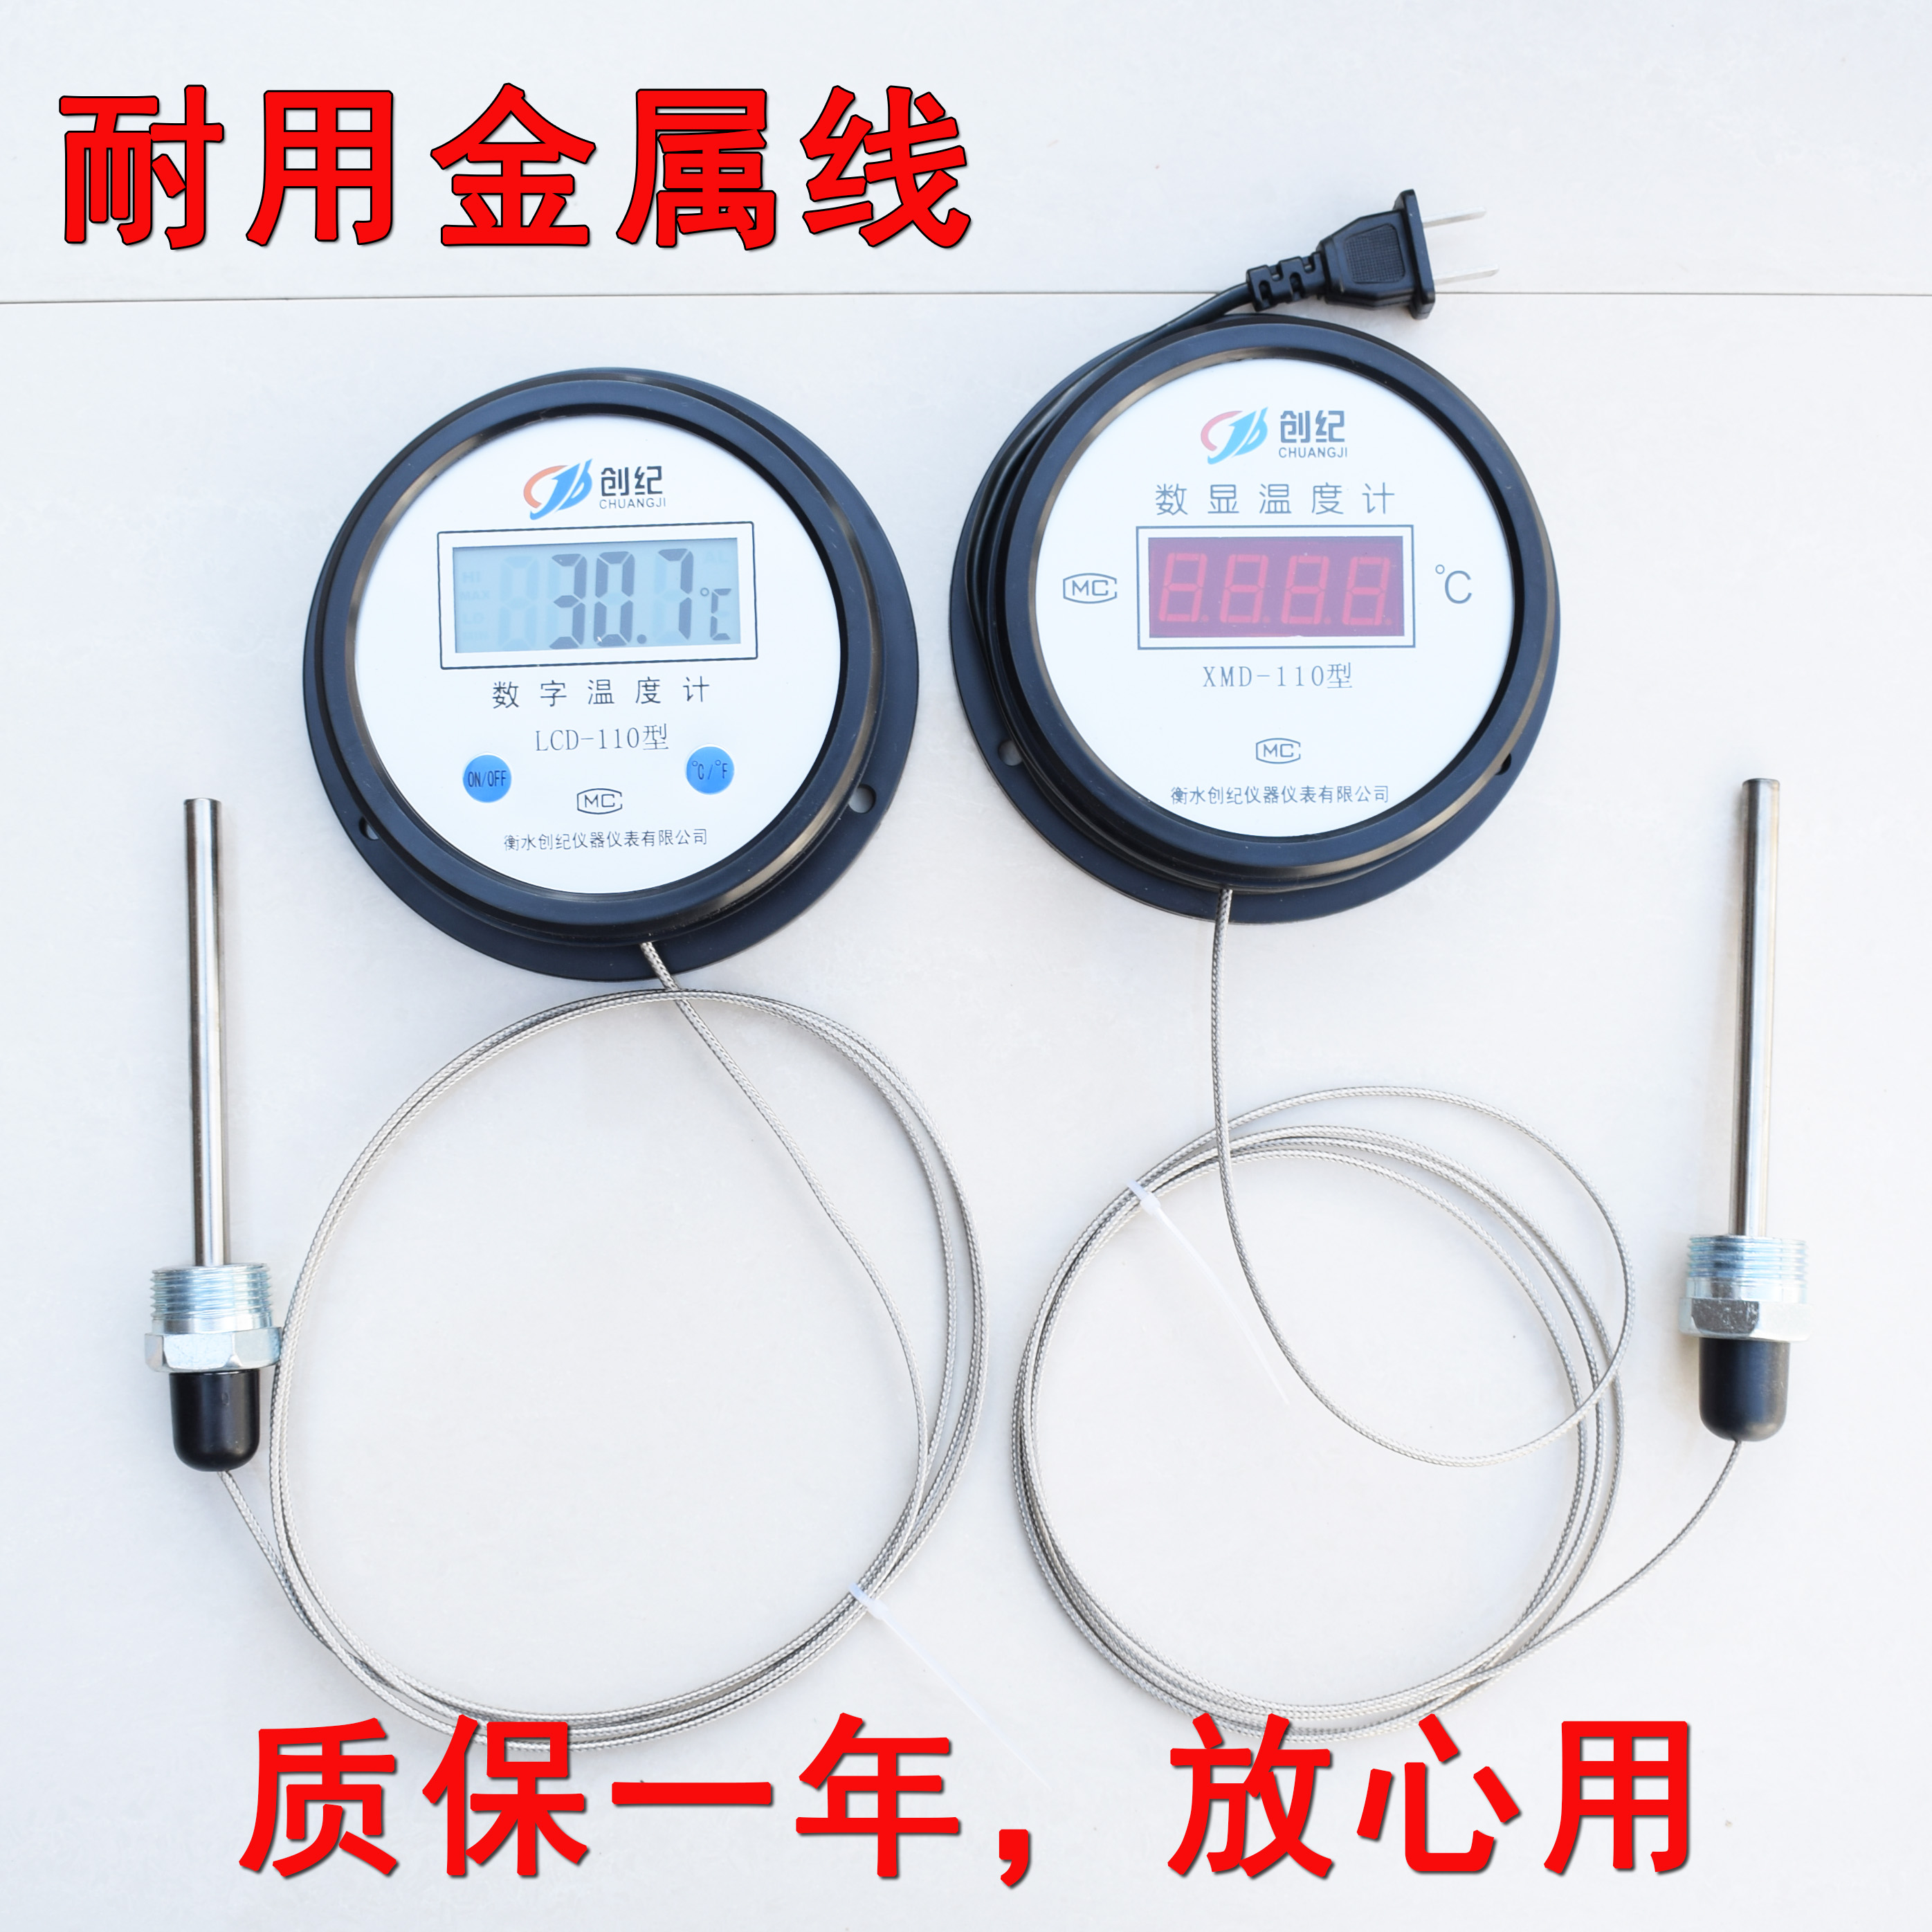 Electronic Digital Thermometer Water Temperature Gauge High Wiring Decoration And Construction Content Installation Work